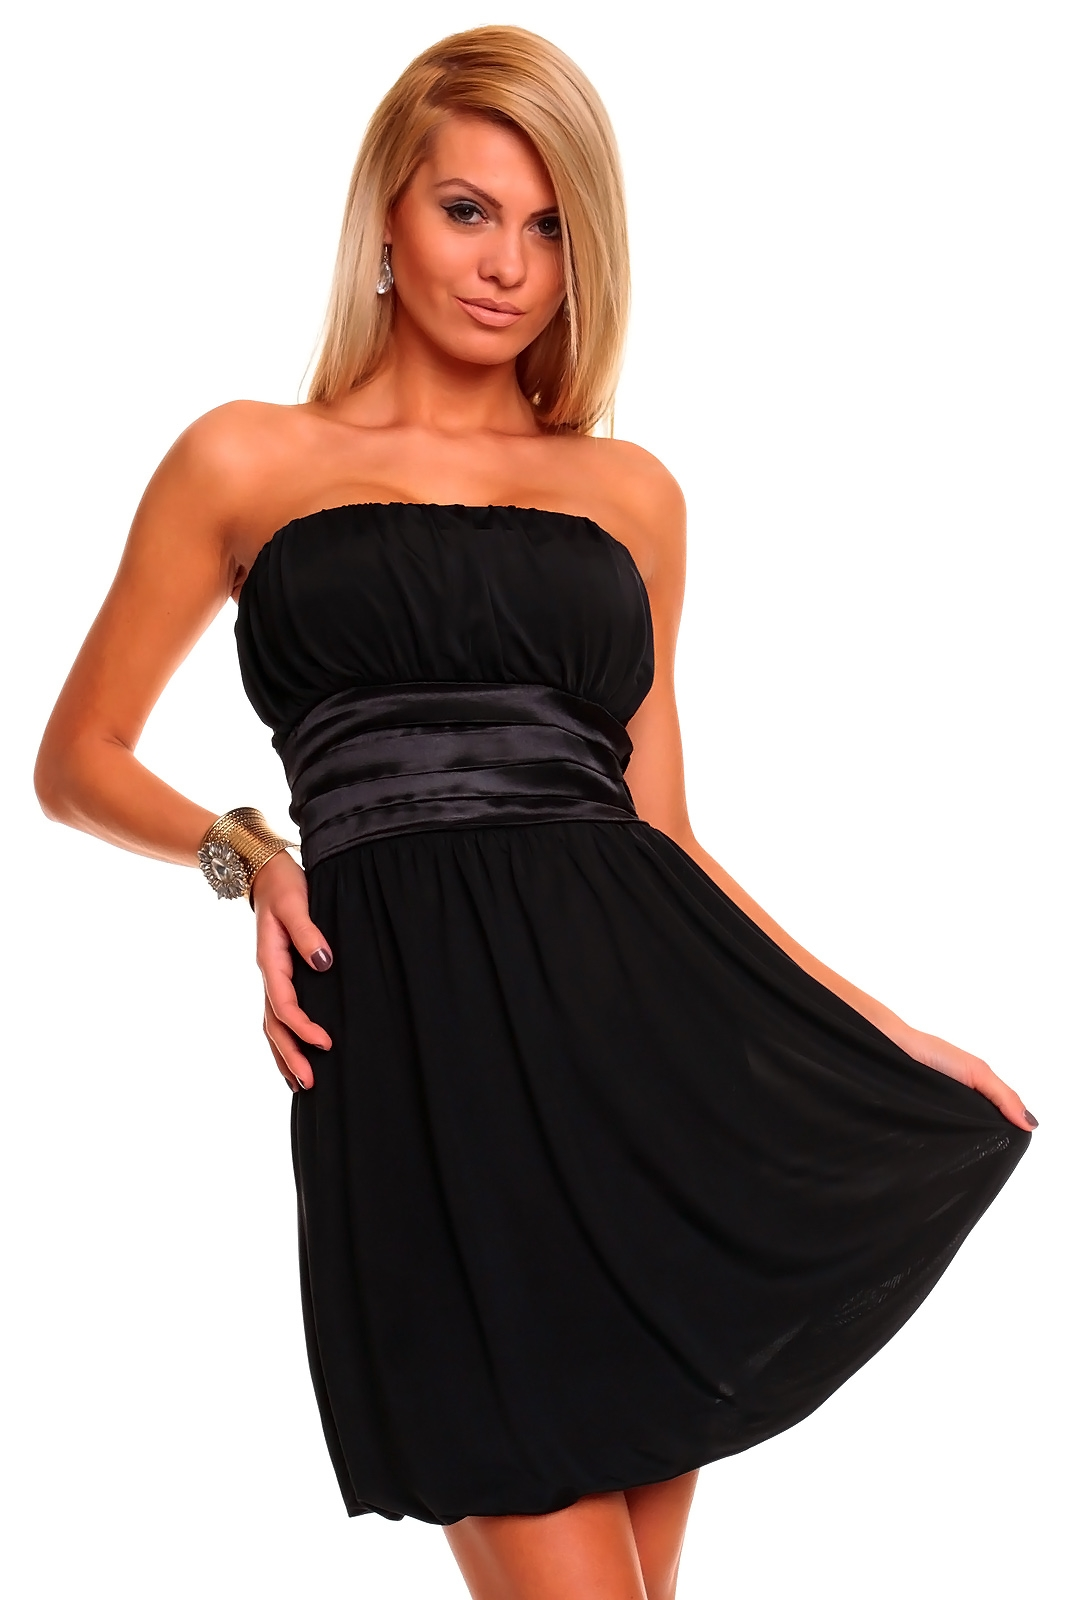 bandeau kleid ballonkleid strandkleid partykleid 4 farben ebay. Black Bedroom Furniture Sets. Home Design Ideas